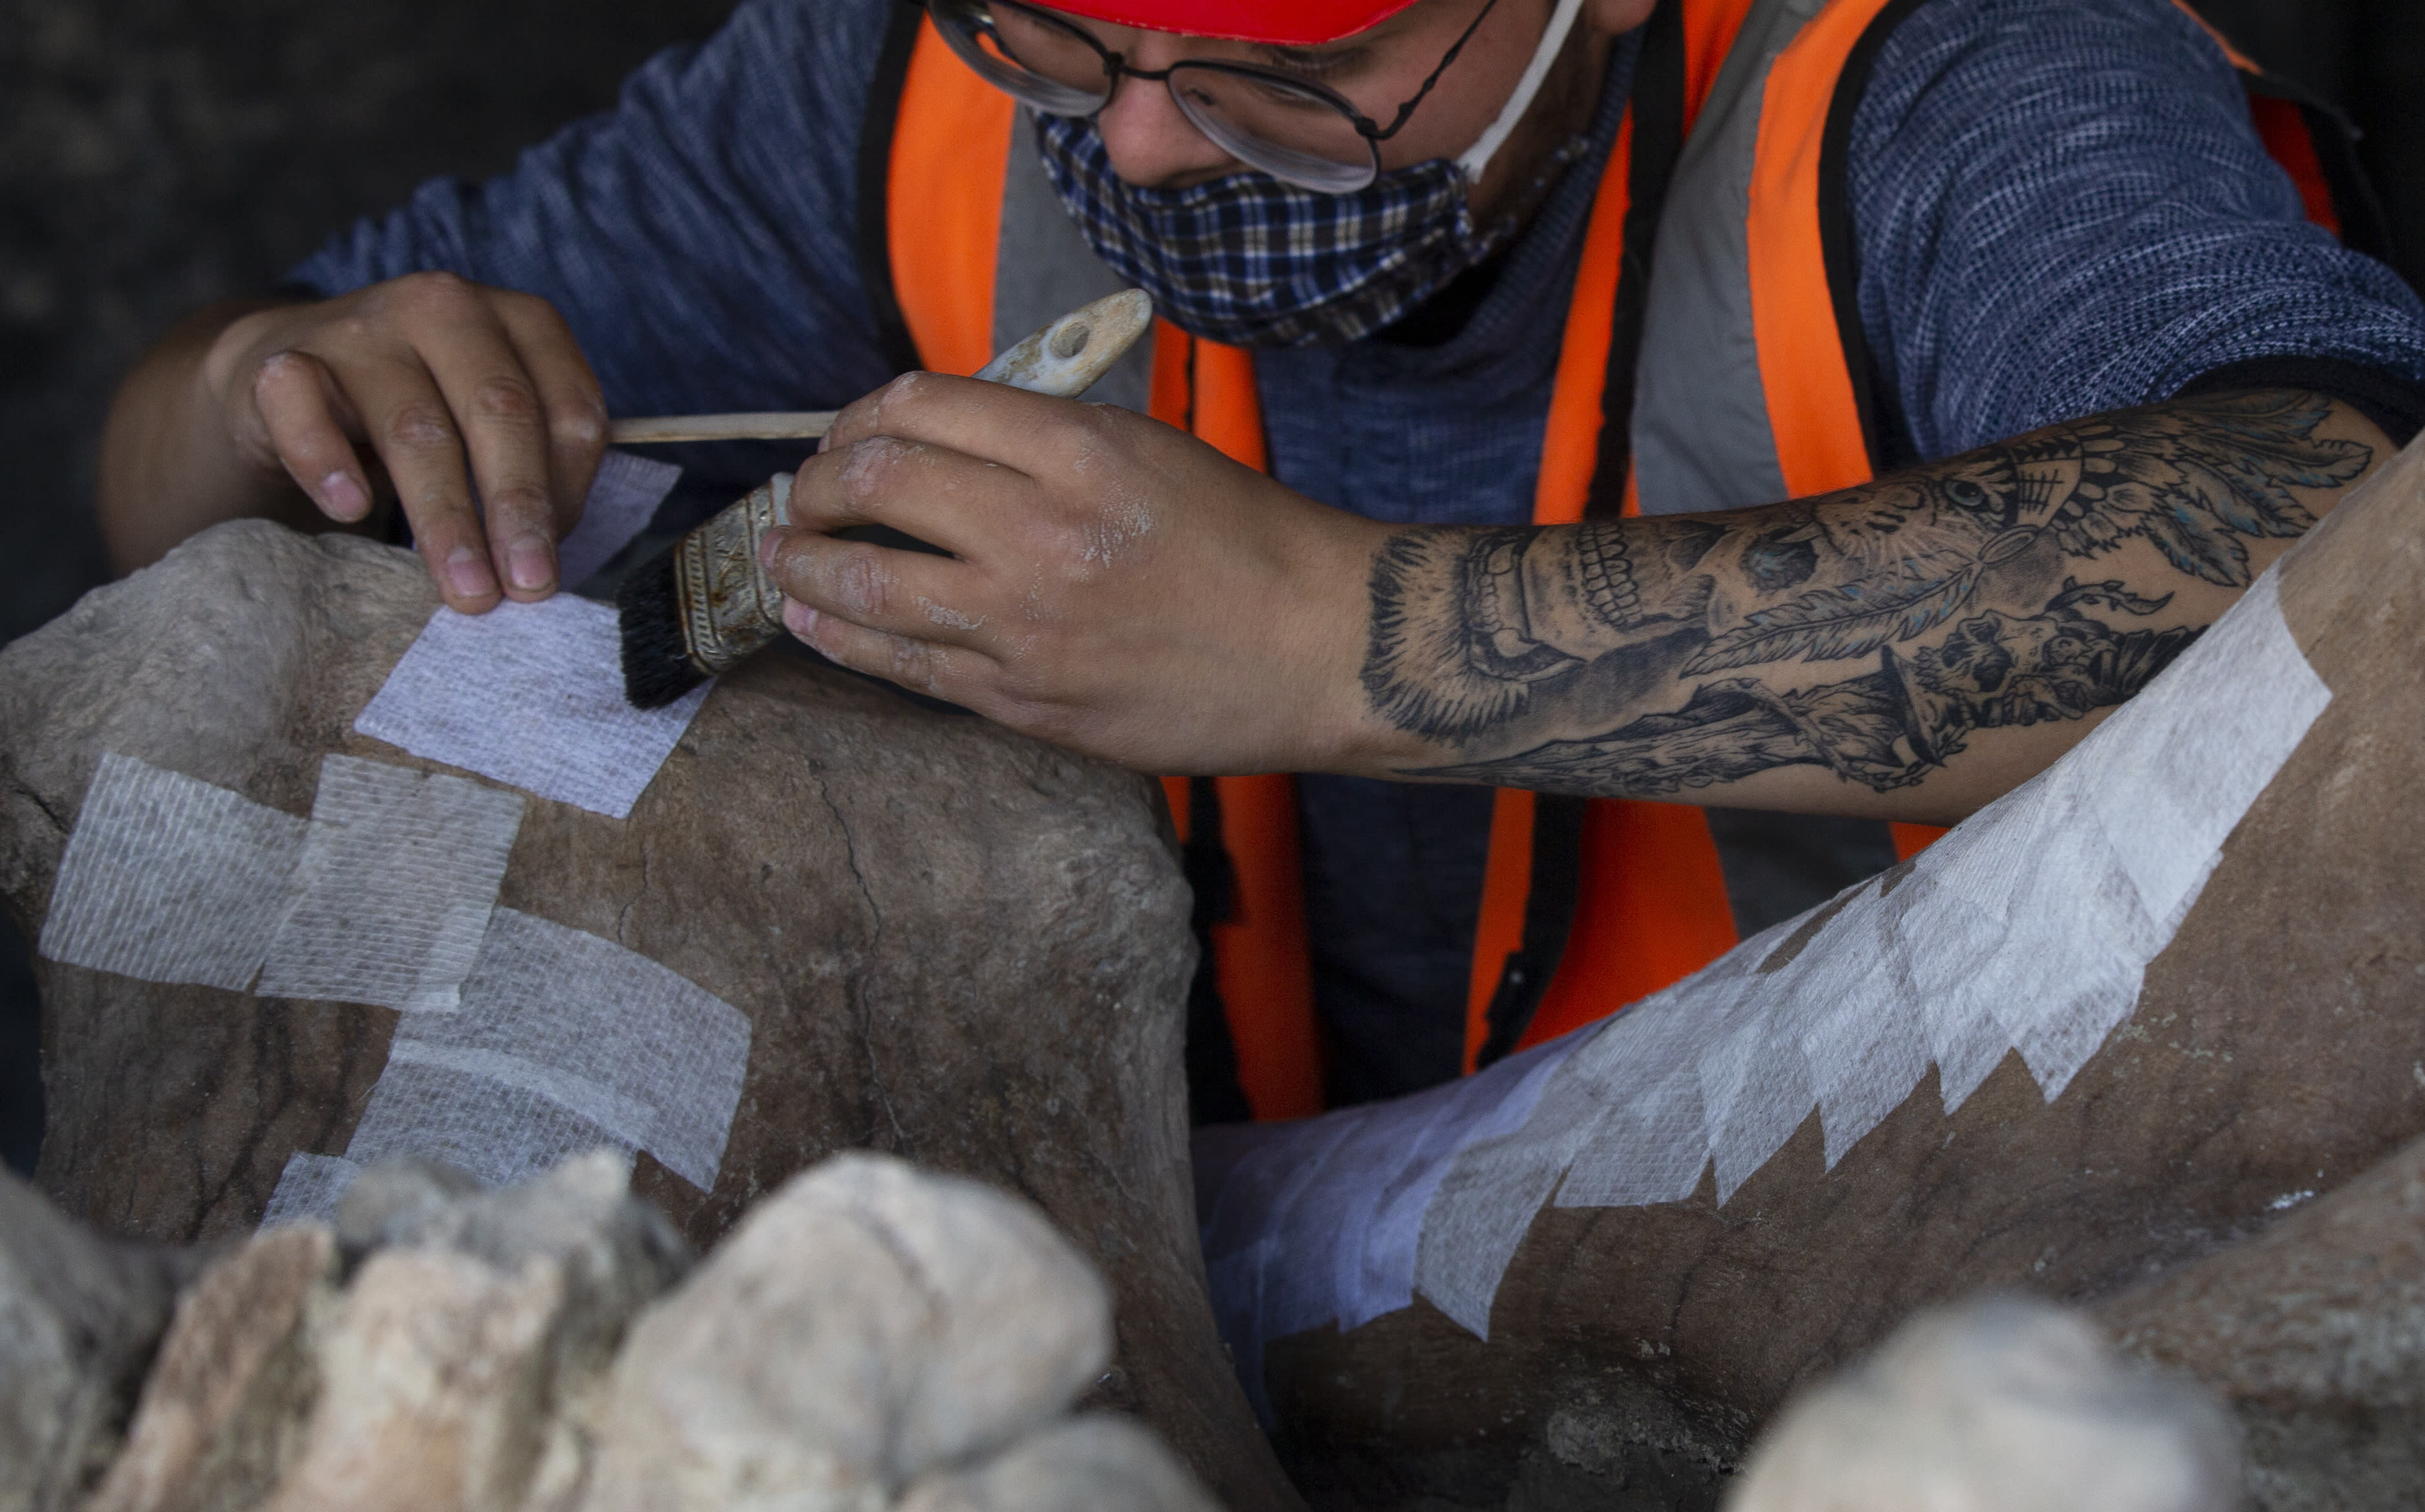 A paleontologist works to preserve the skeleton of a mammoth that was discovered at the construction site of Mexico City's new airport in the Santa Lucia military base, Mexico, Thursday, Sept. 3, 2020. The paleontologists are busy digging up and preserving the skeletons of mammoths, camels, horses, and bison as machinery and workers are busy with the construction of the Felipe Angeles International Airport by order of President Andres Manuel Lopez Obrador. (AP Photo/Marco Ugarte)